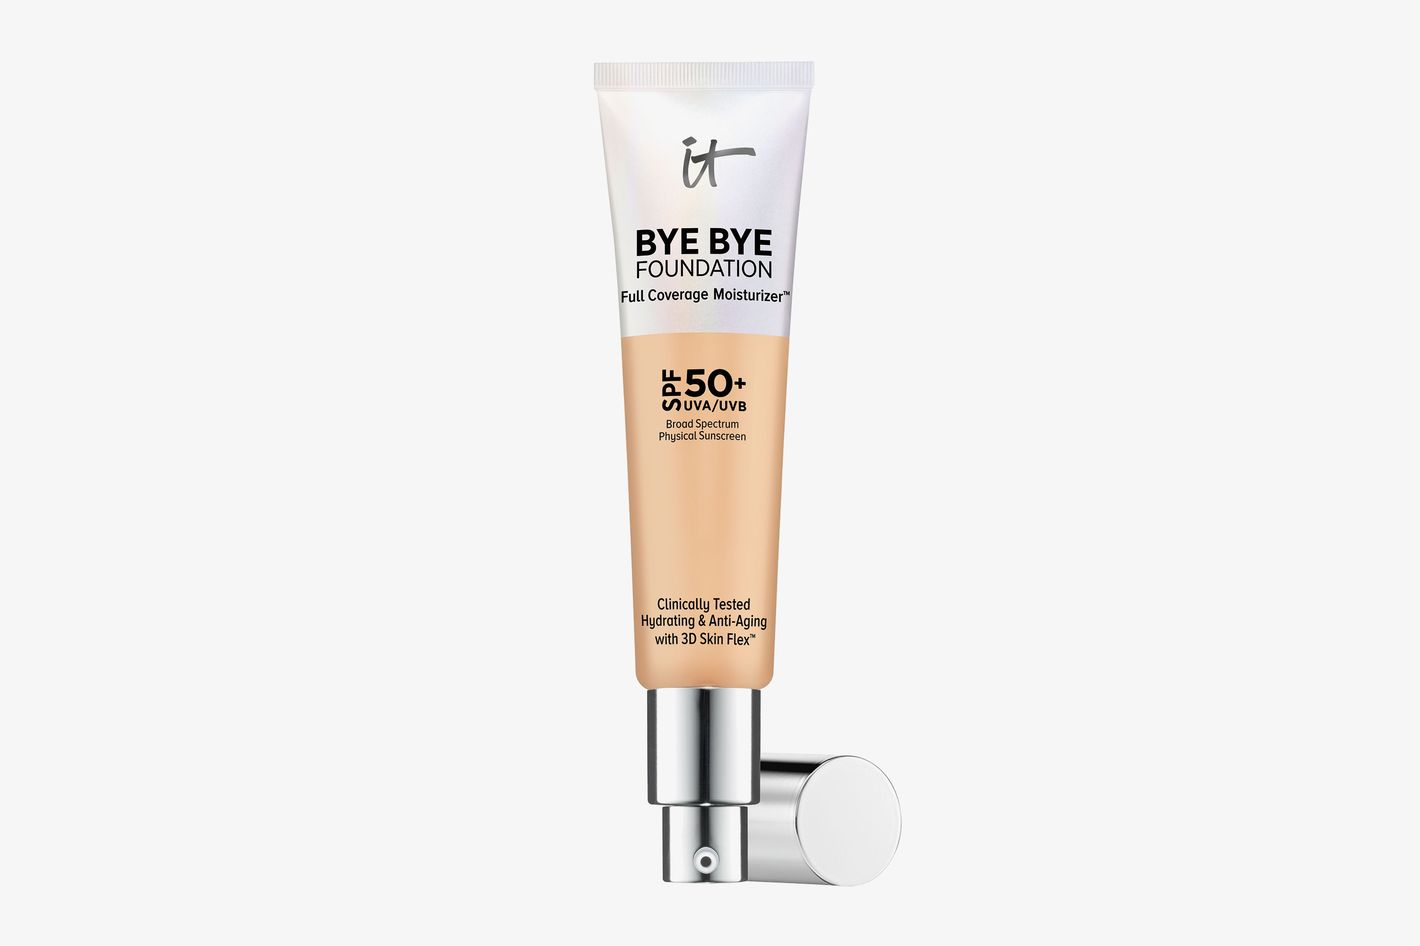 Bye Bye Foundation Full Coverage Moisturizer with SPF 50+ Medium